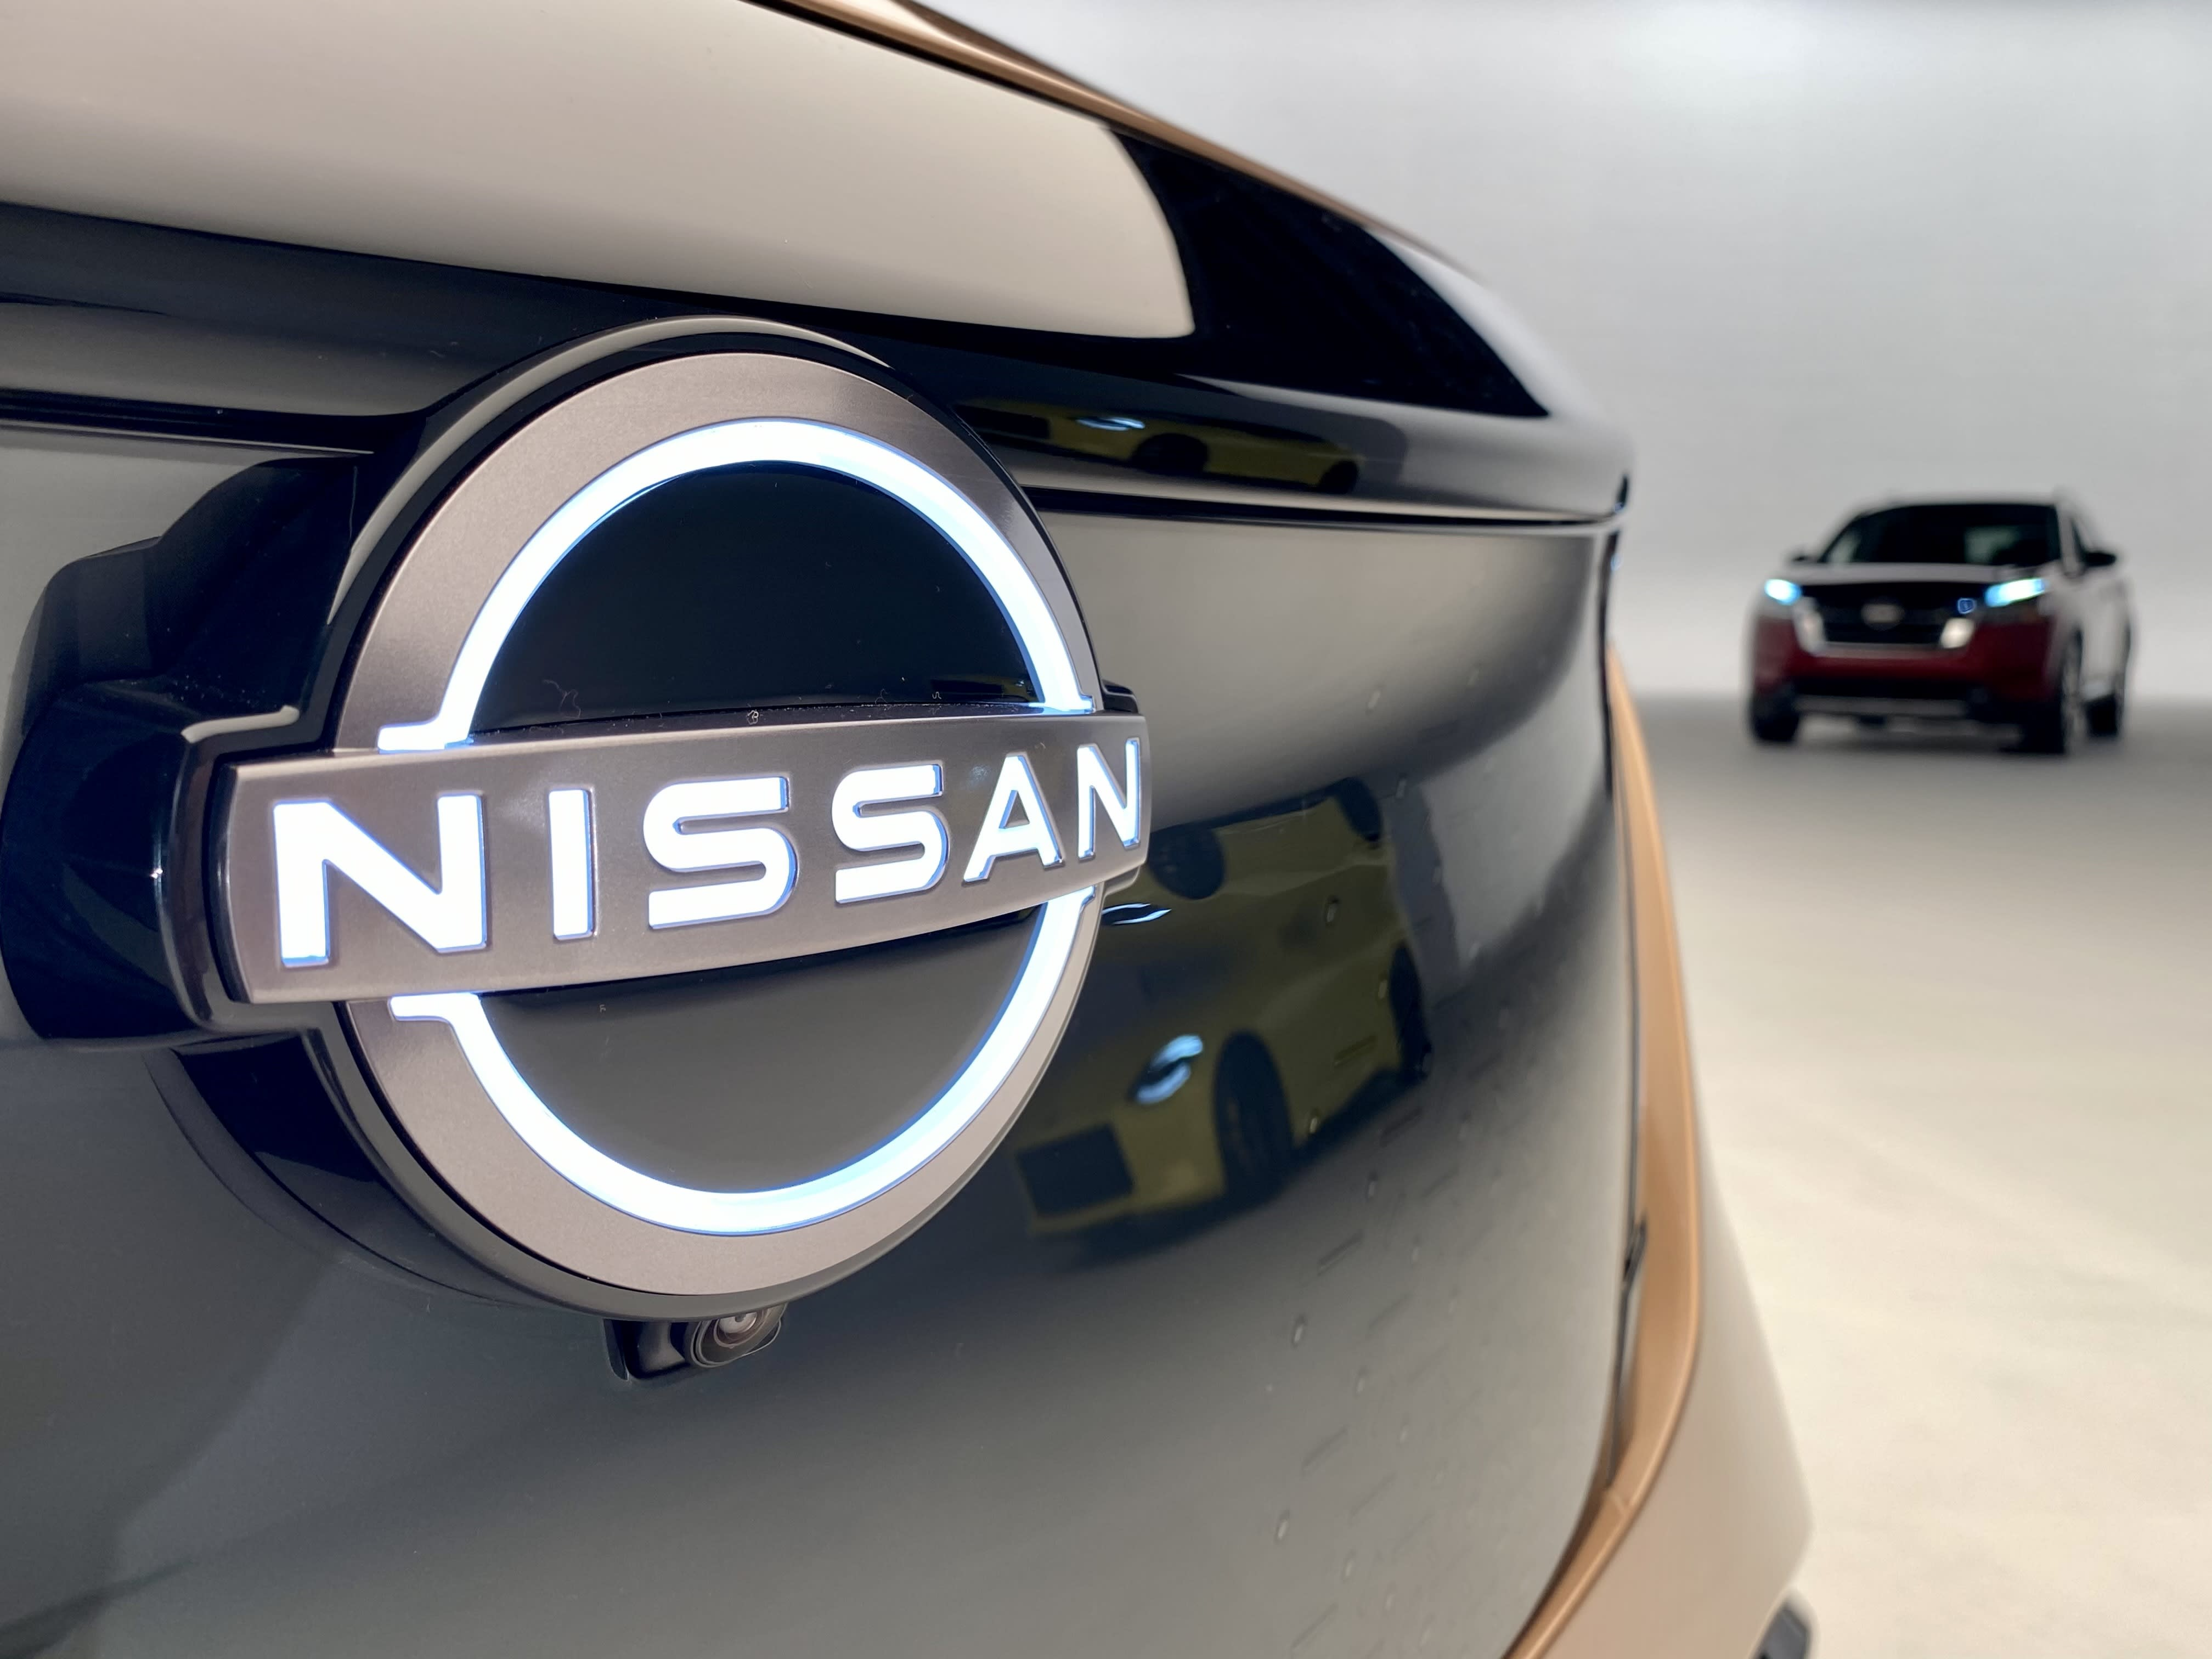 Nissan's COO says its post-Ghosn turnaround plan is on track to hit targets a year ahead of schedule